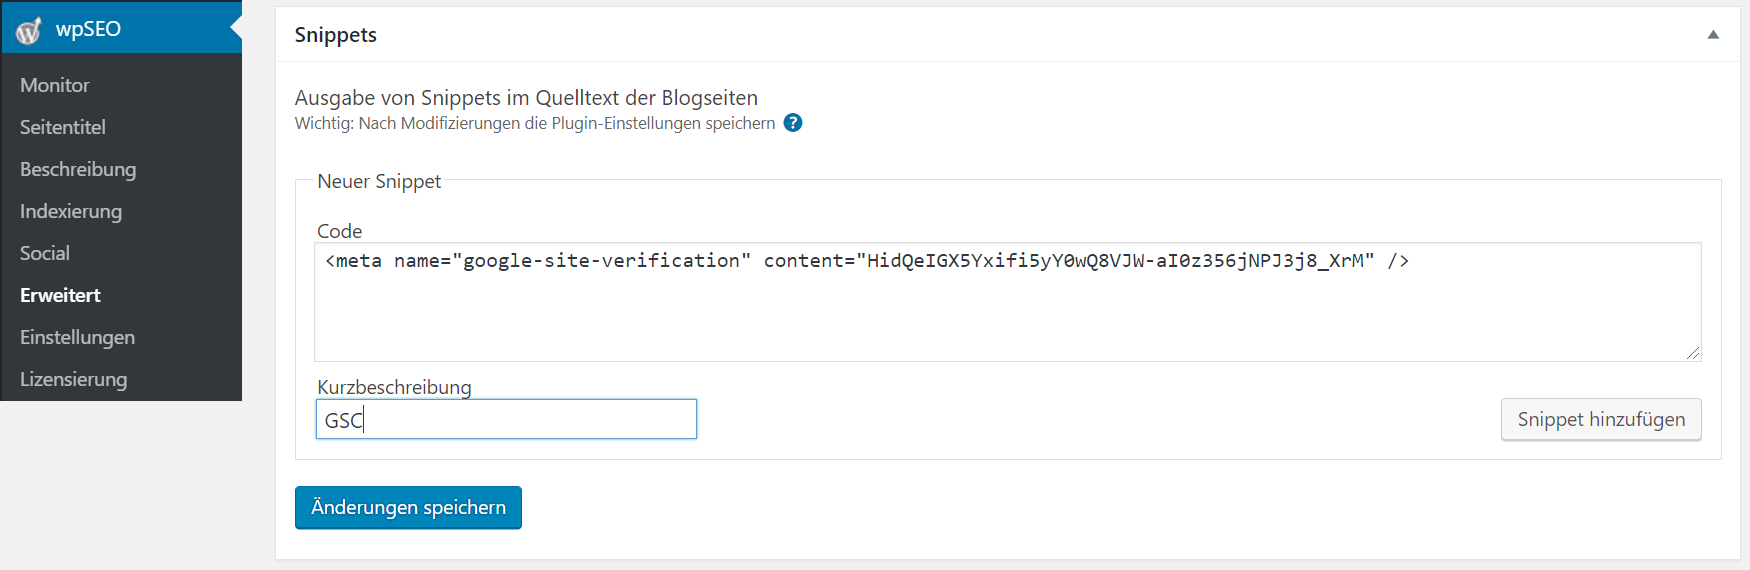 Google Search Console mit wpSEO und WordPress verifizieren